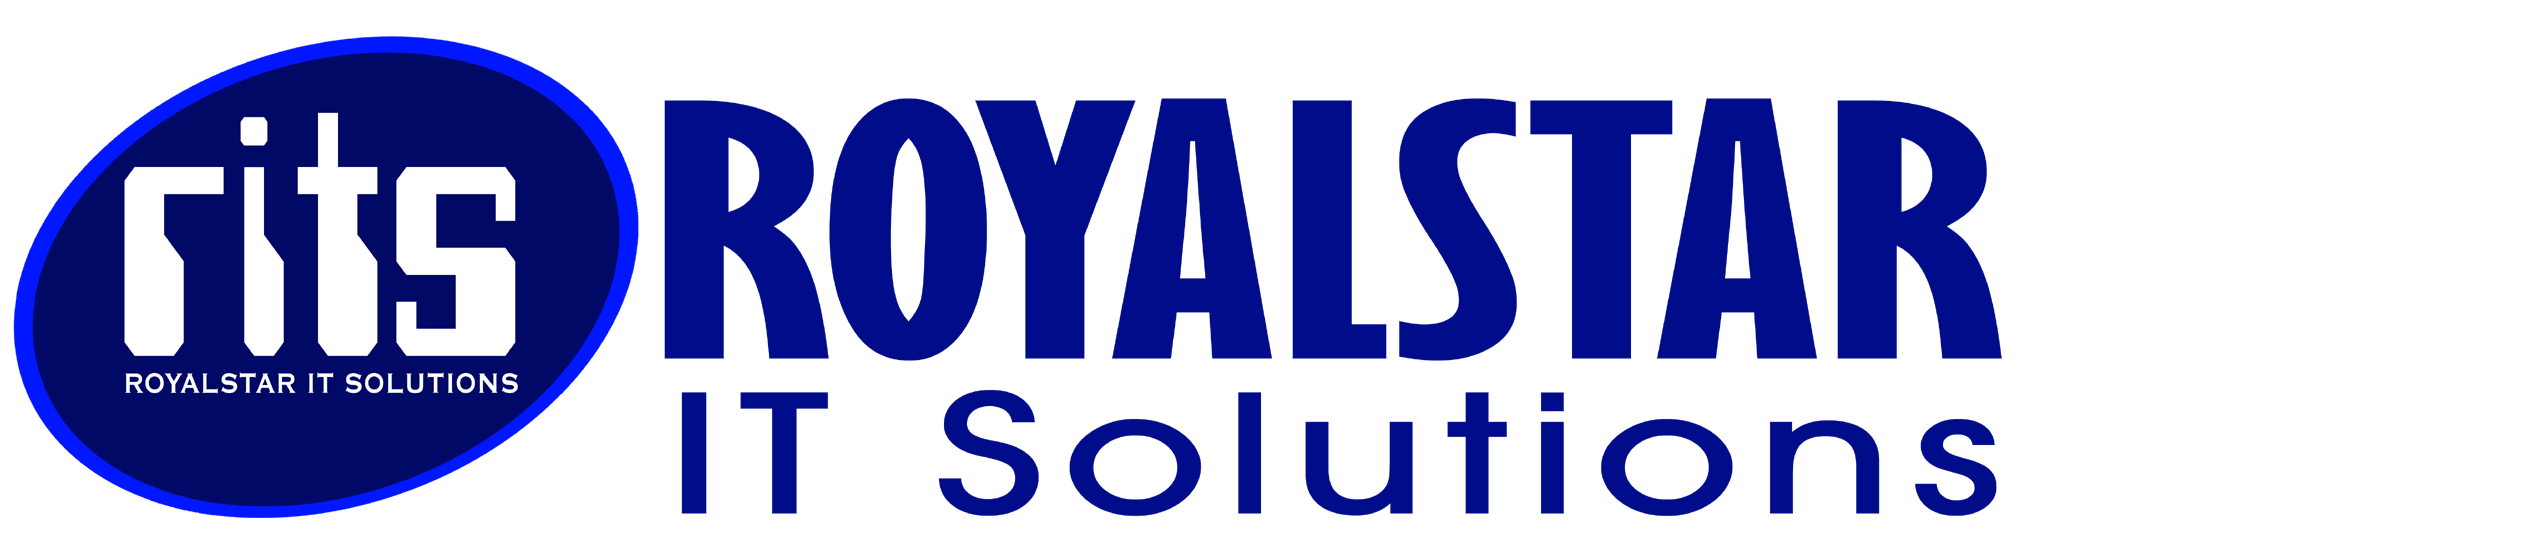 Royalstar IT Solutions